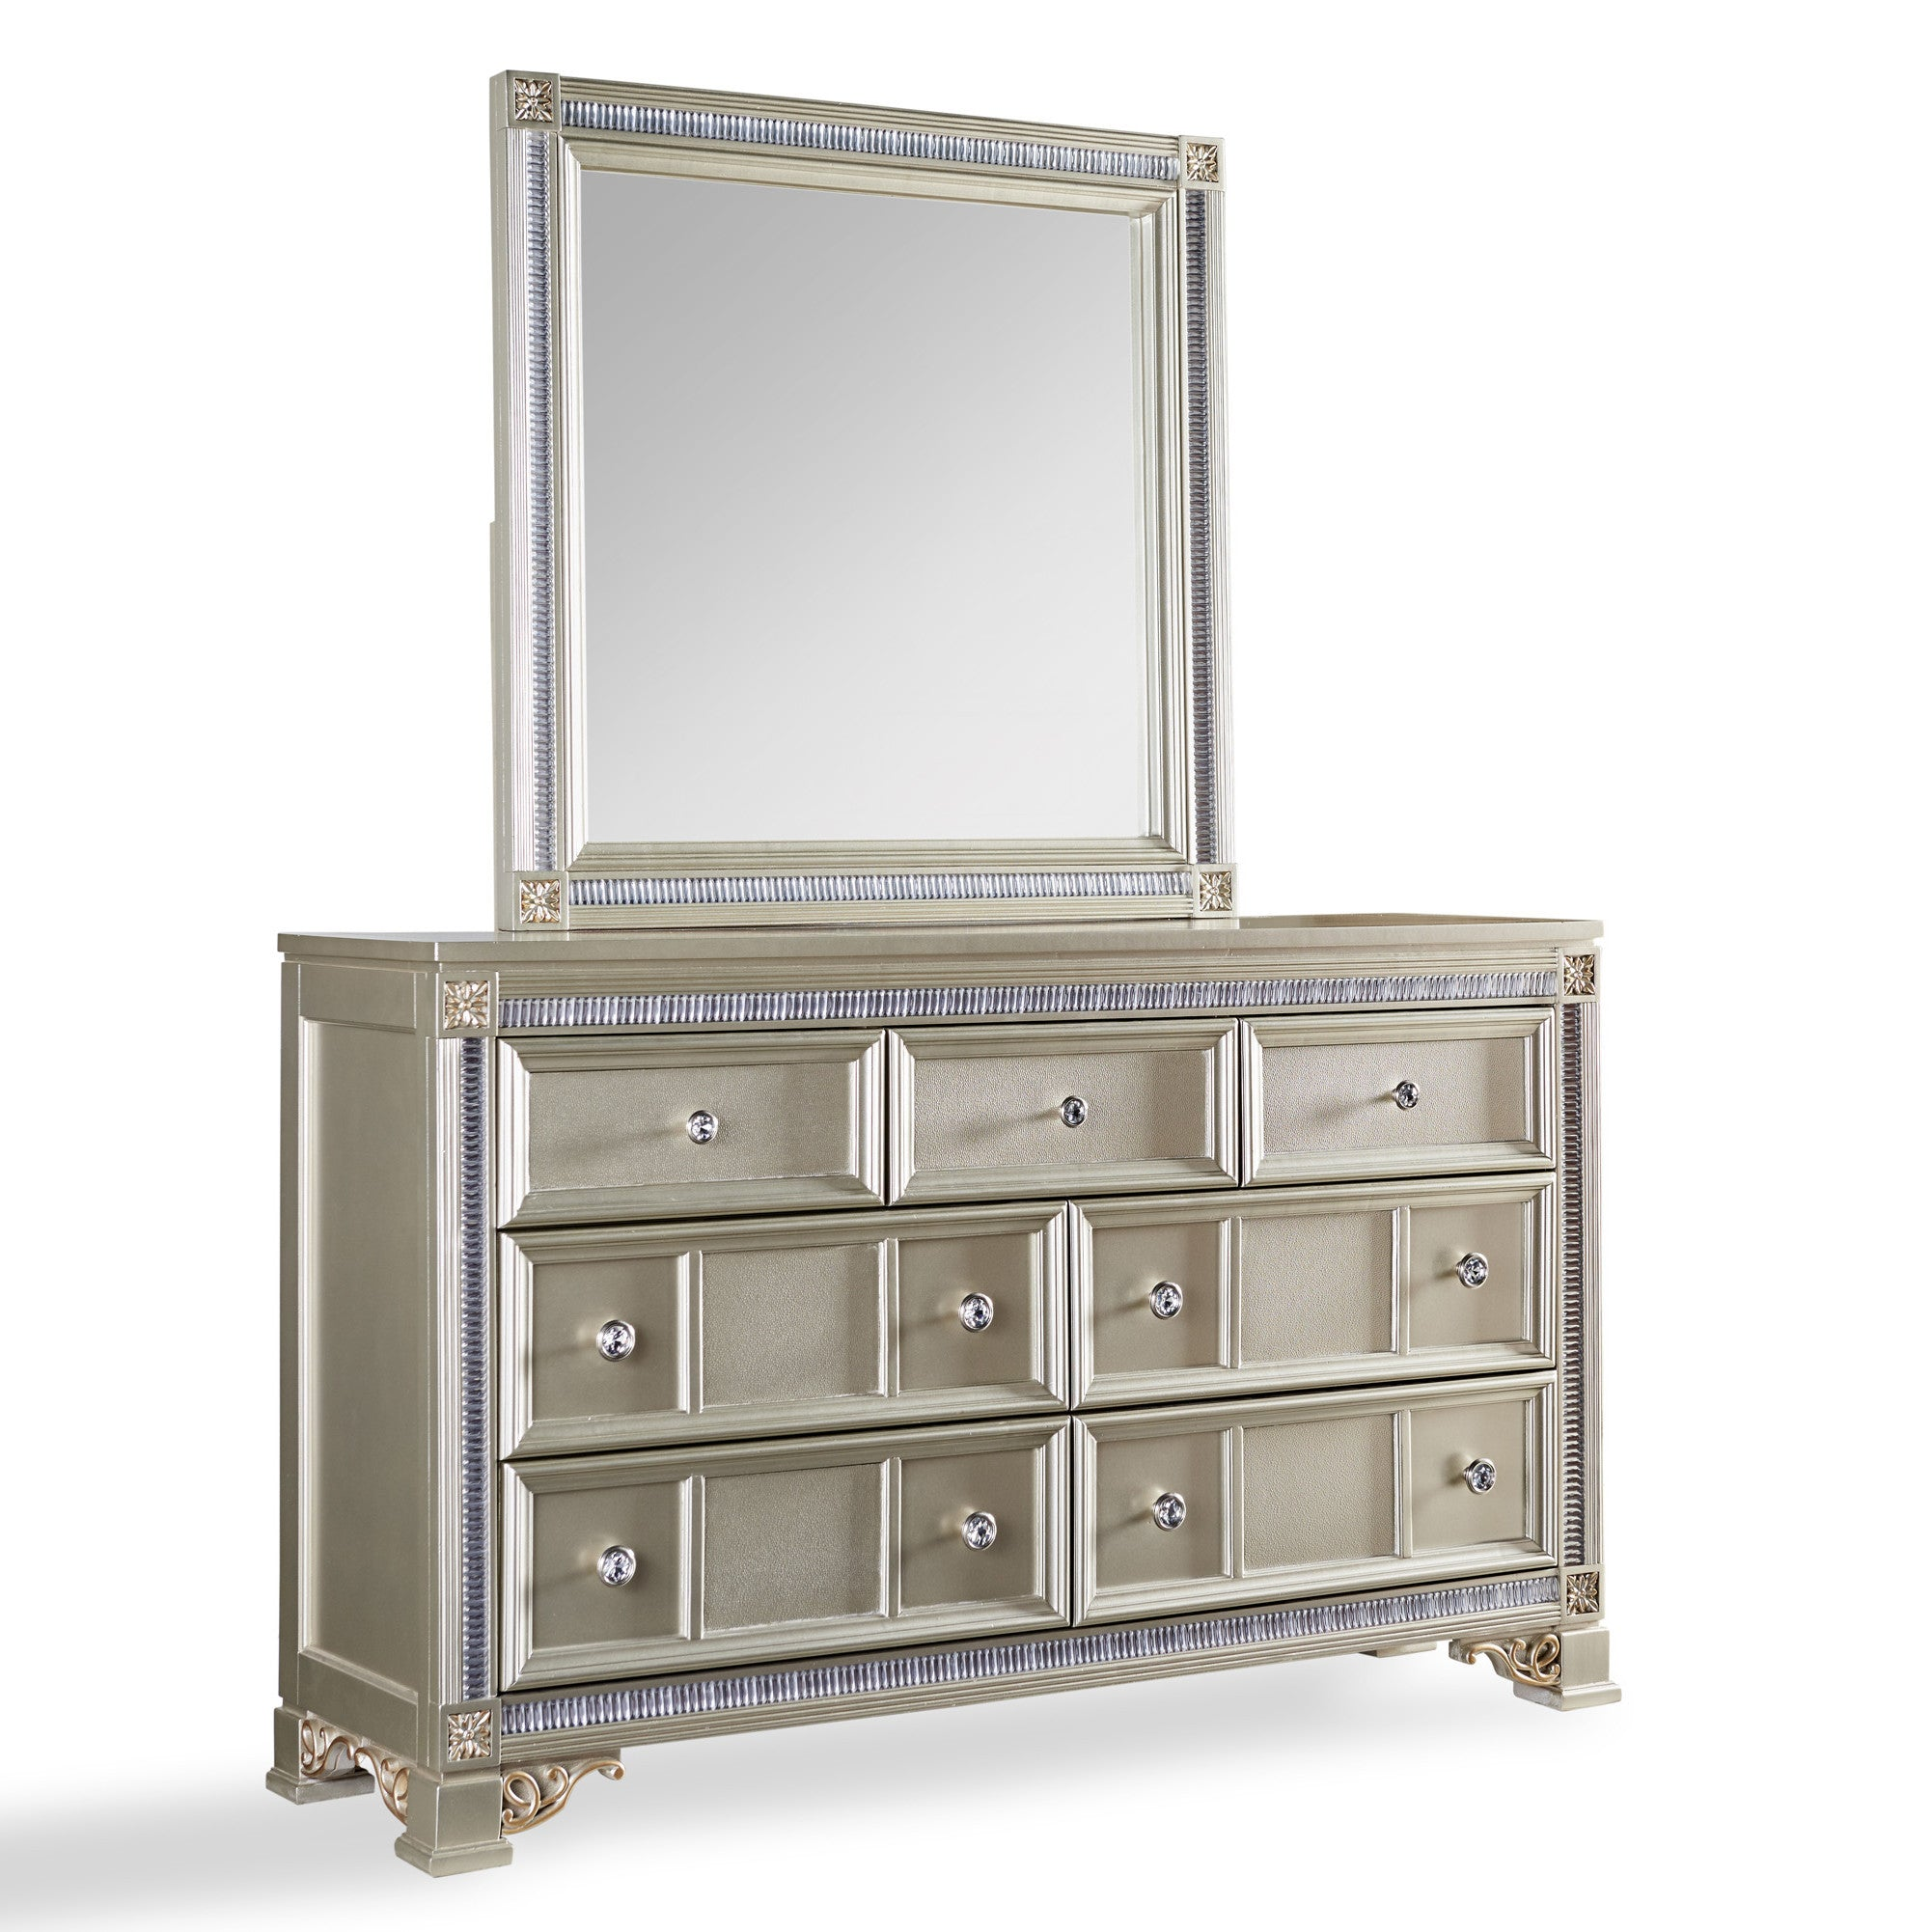 kp dresser door shore with basics mirrored c smart black dressers multiple drawer south finishes